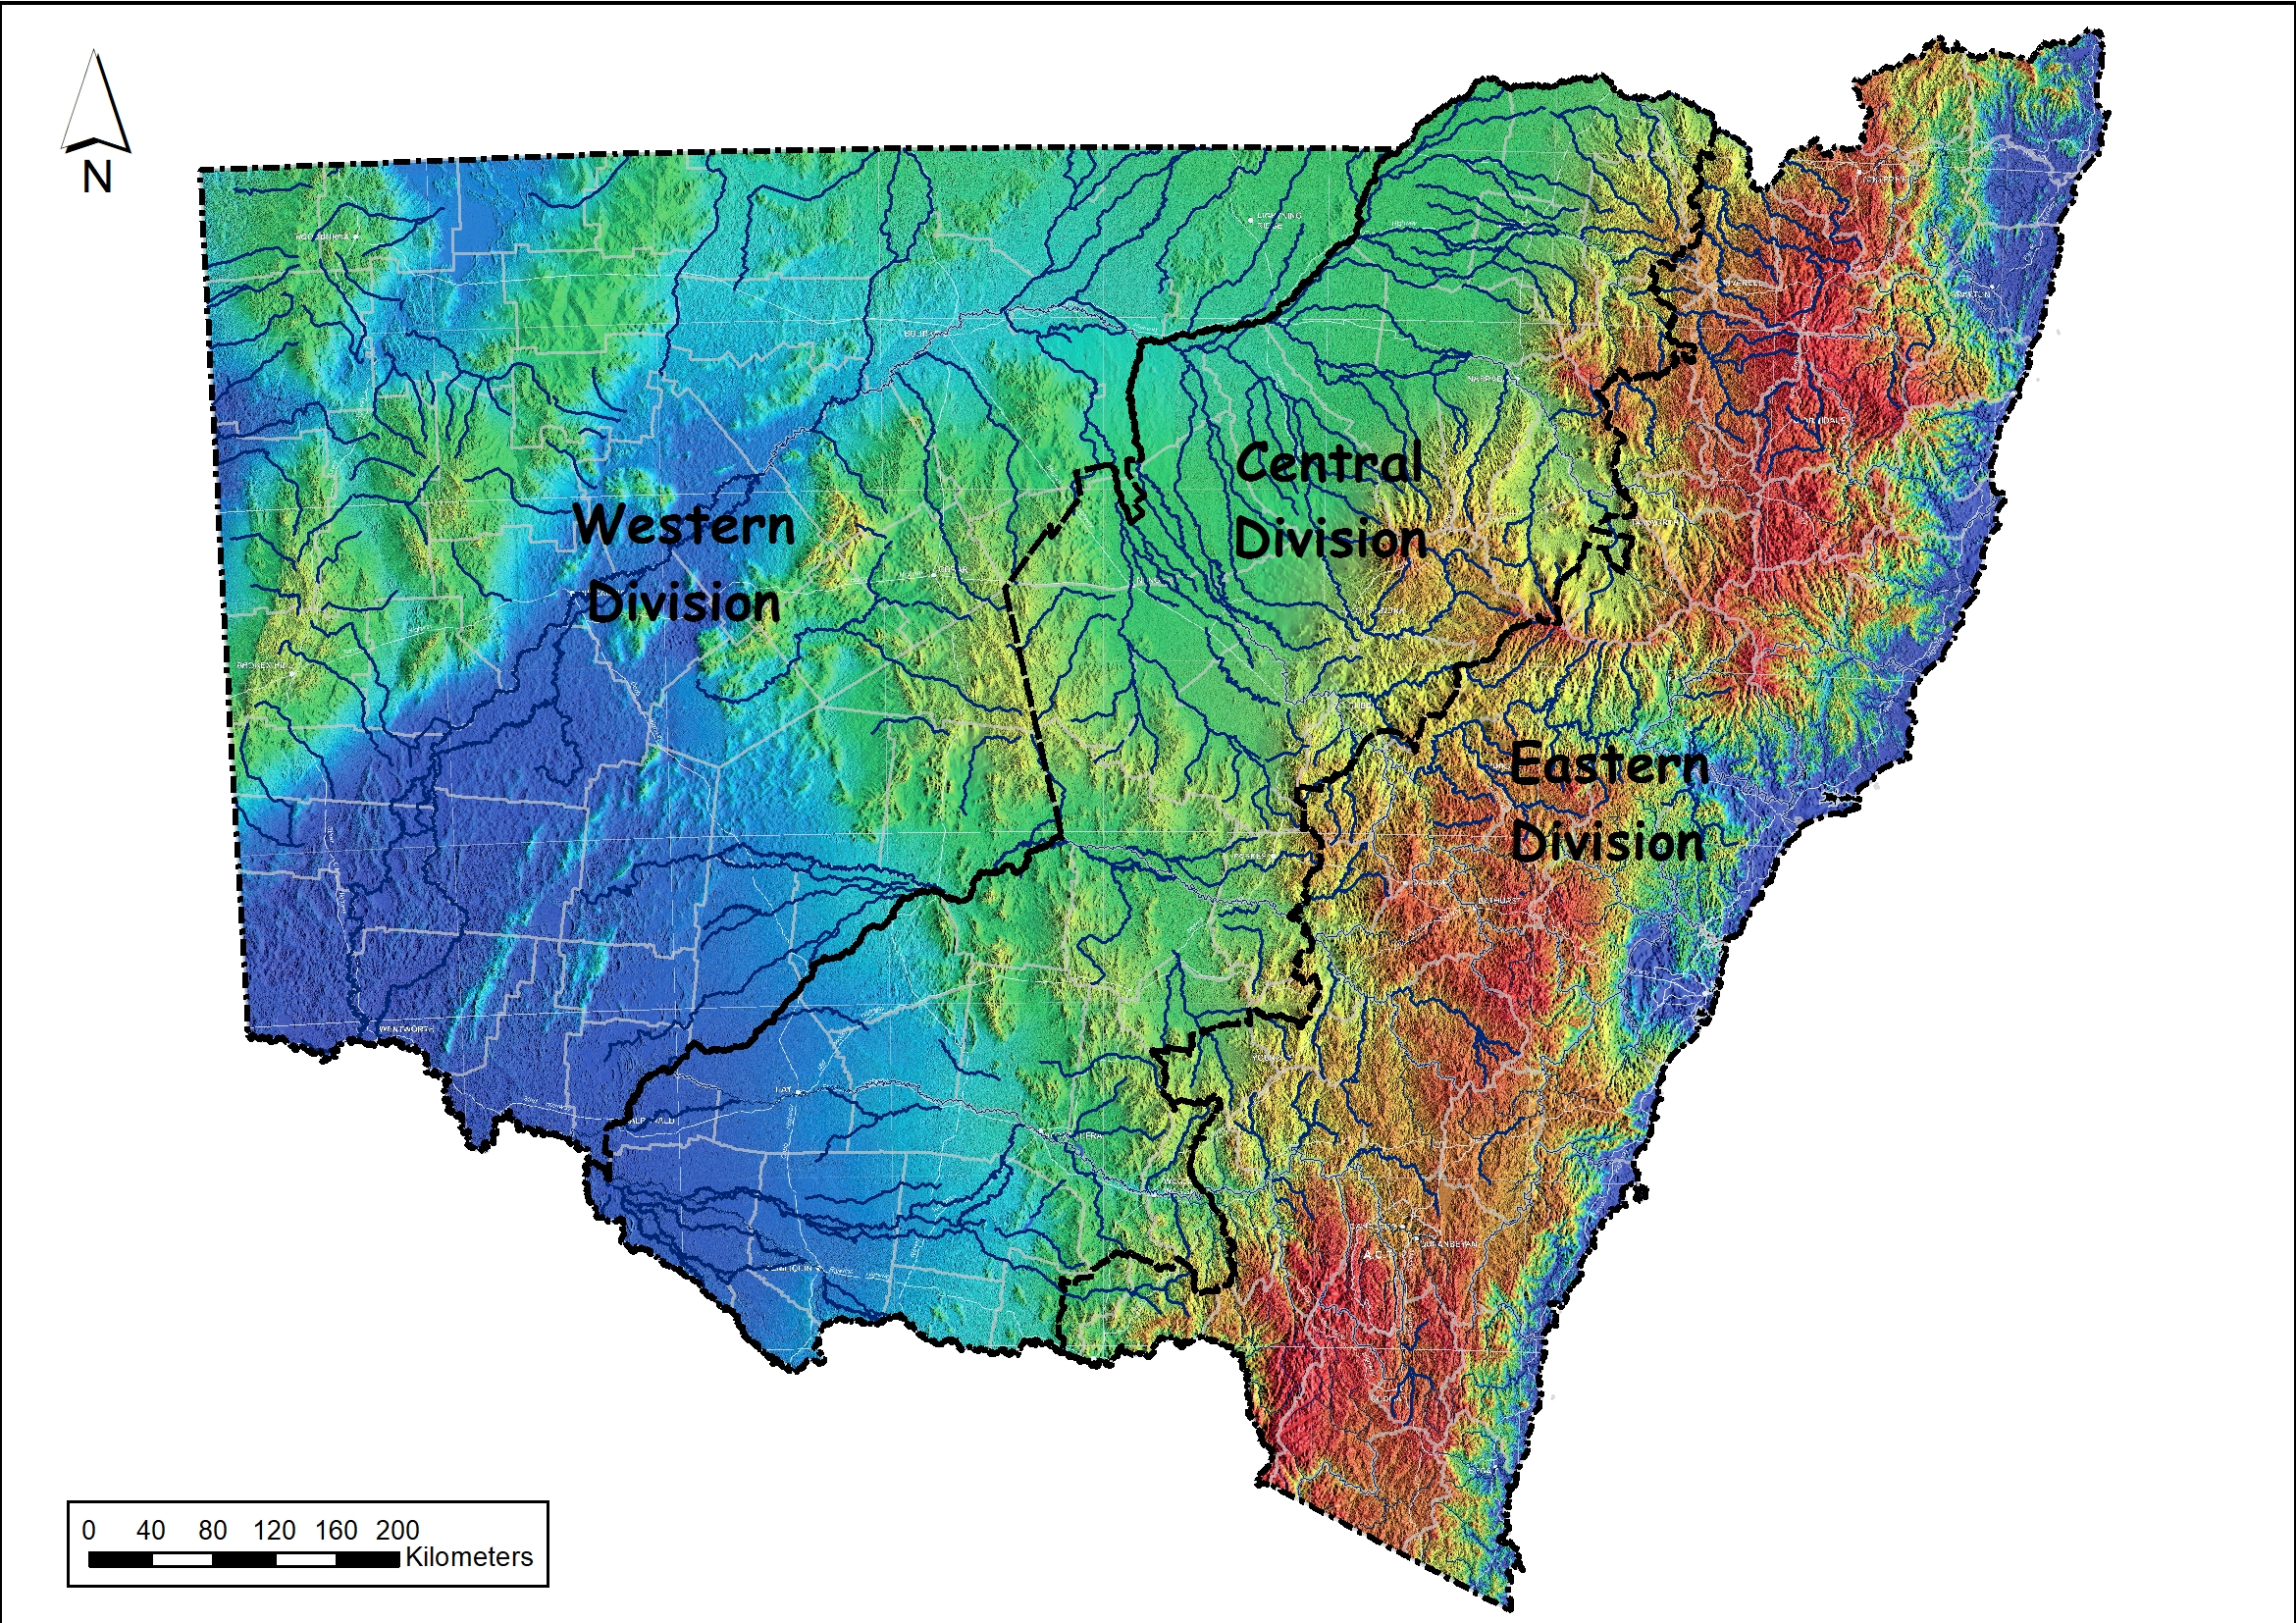 RESEARCH NEWS A map of the Land Divisions of New South Wales